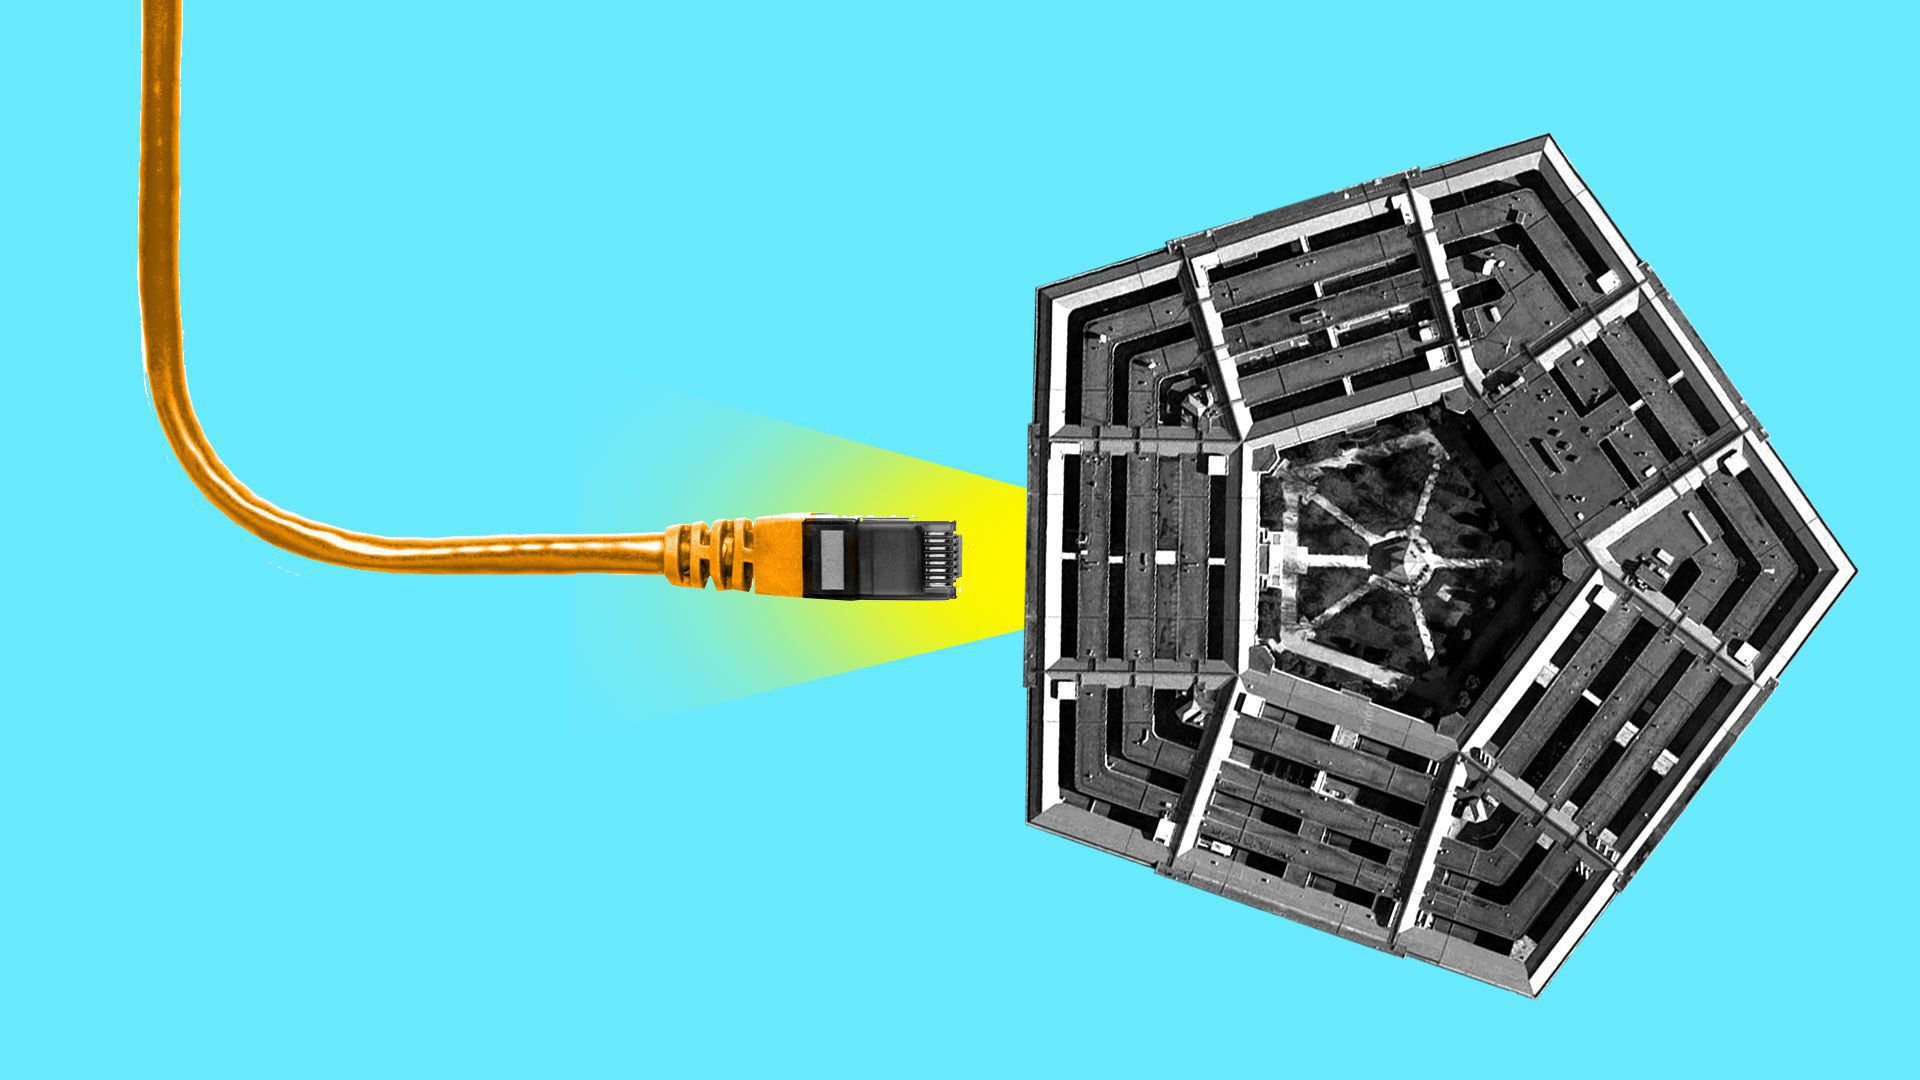 An illustration of an Ethernet cable being plugged into the Pentagon